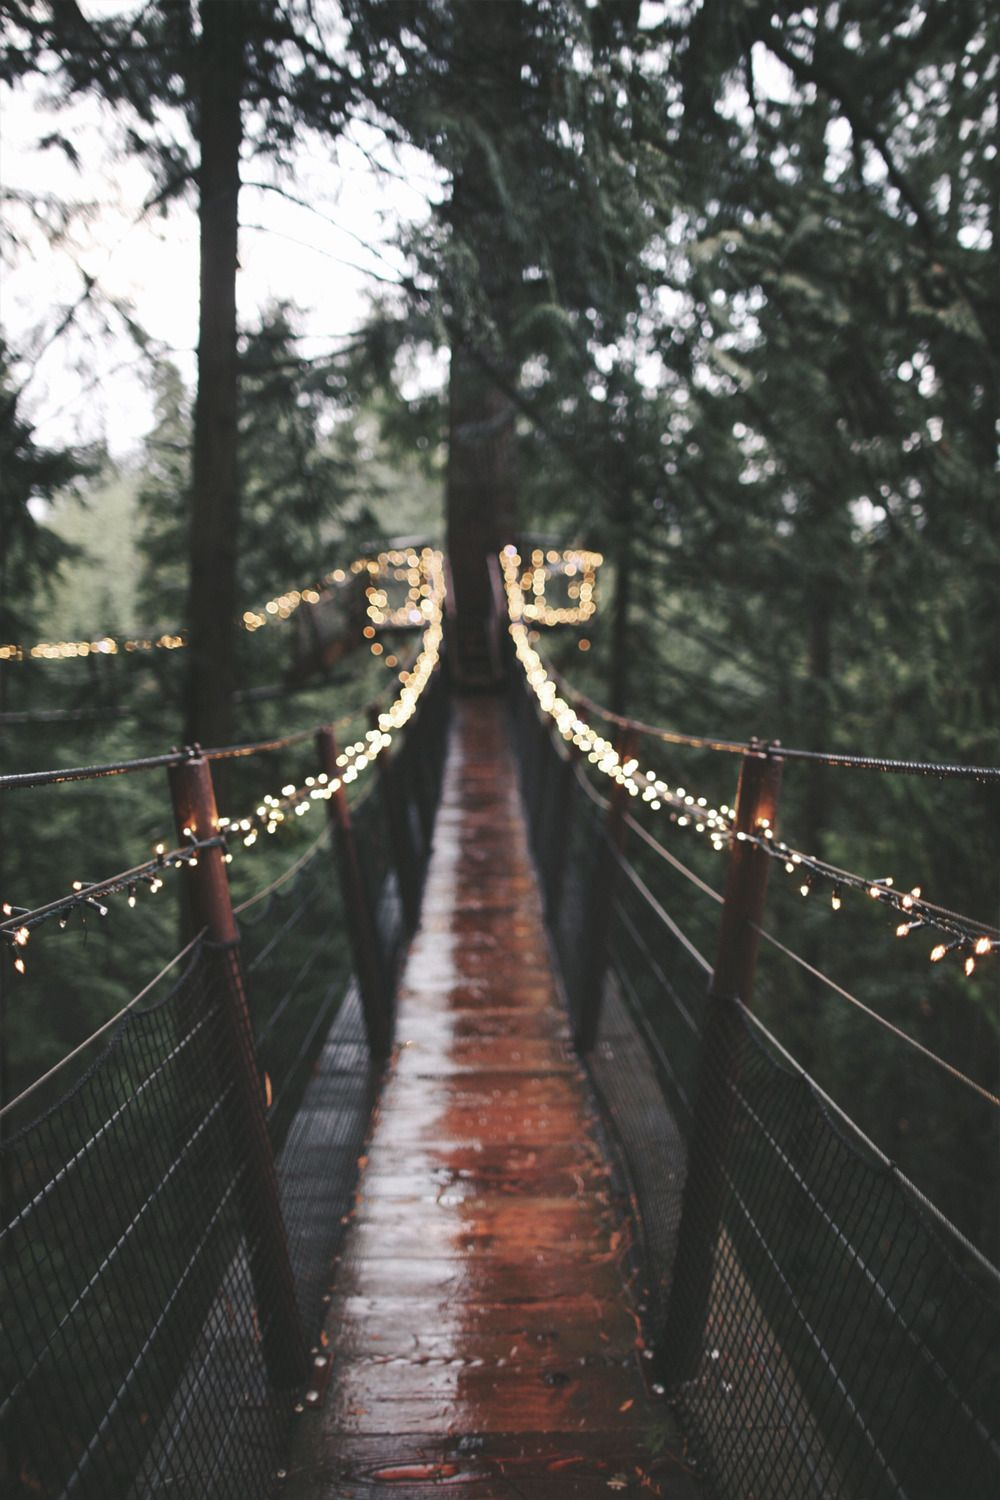 Moody Nature — wcanvas Forest Lights by Ryan Wilson